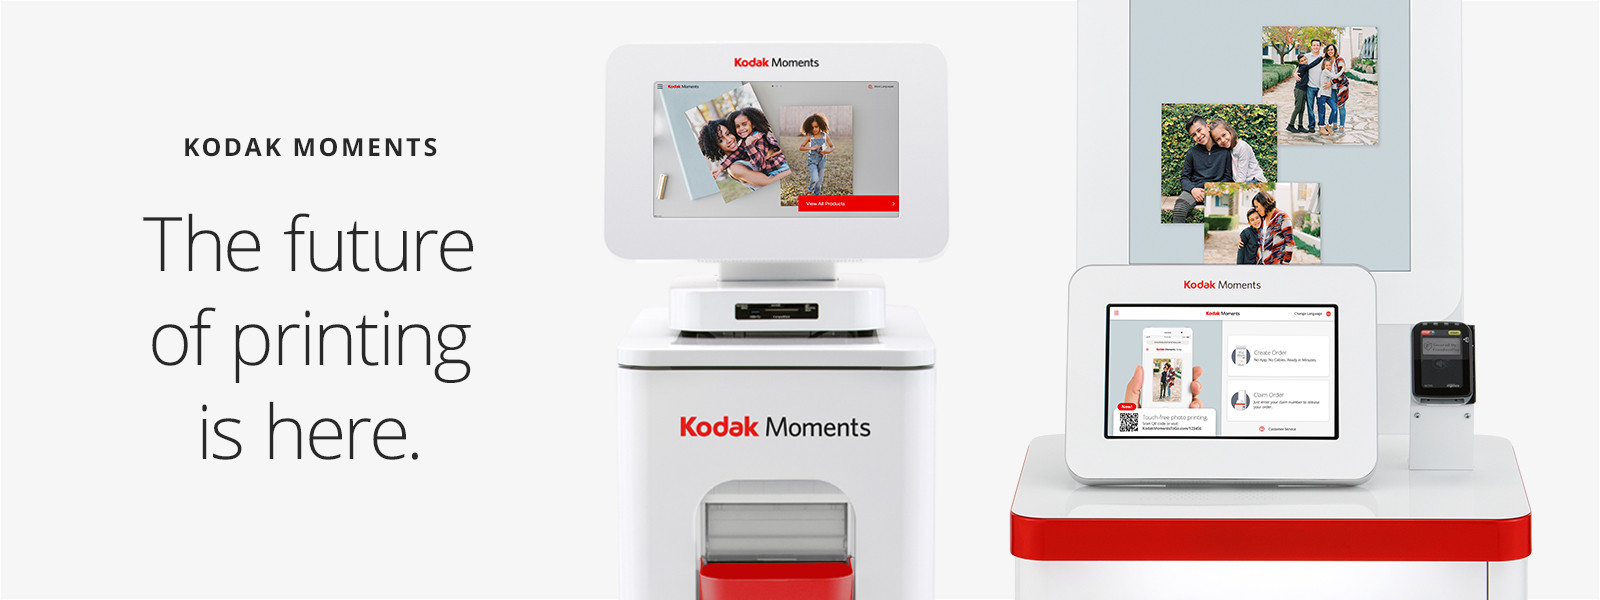 Kodak Moments for Retailers